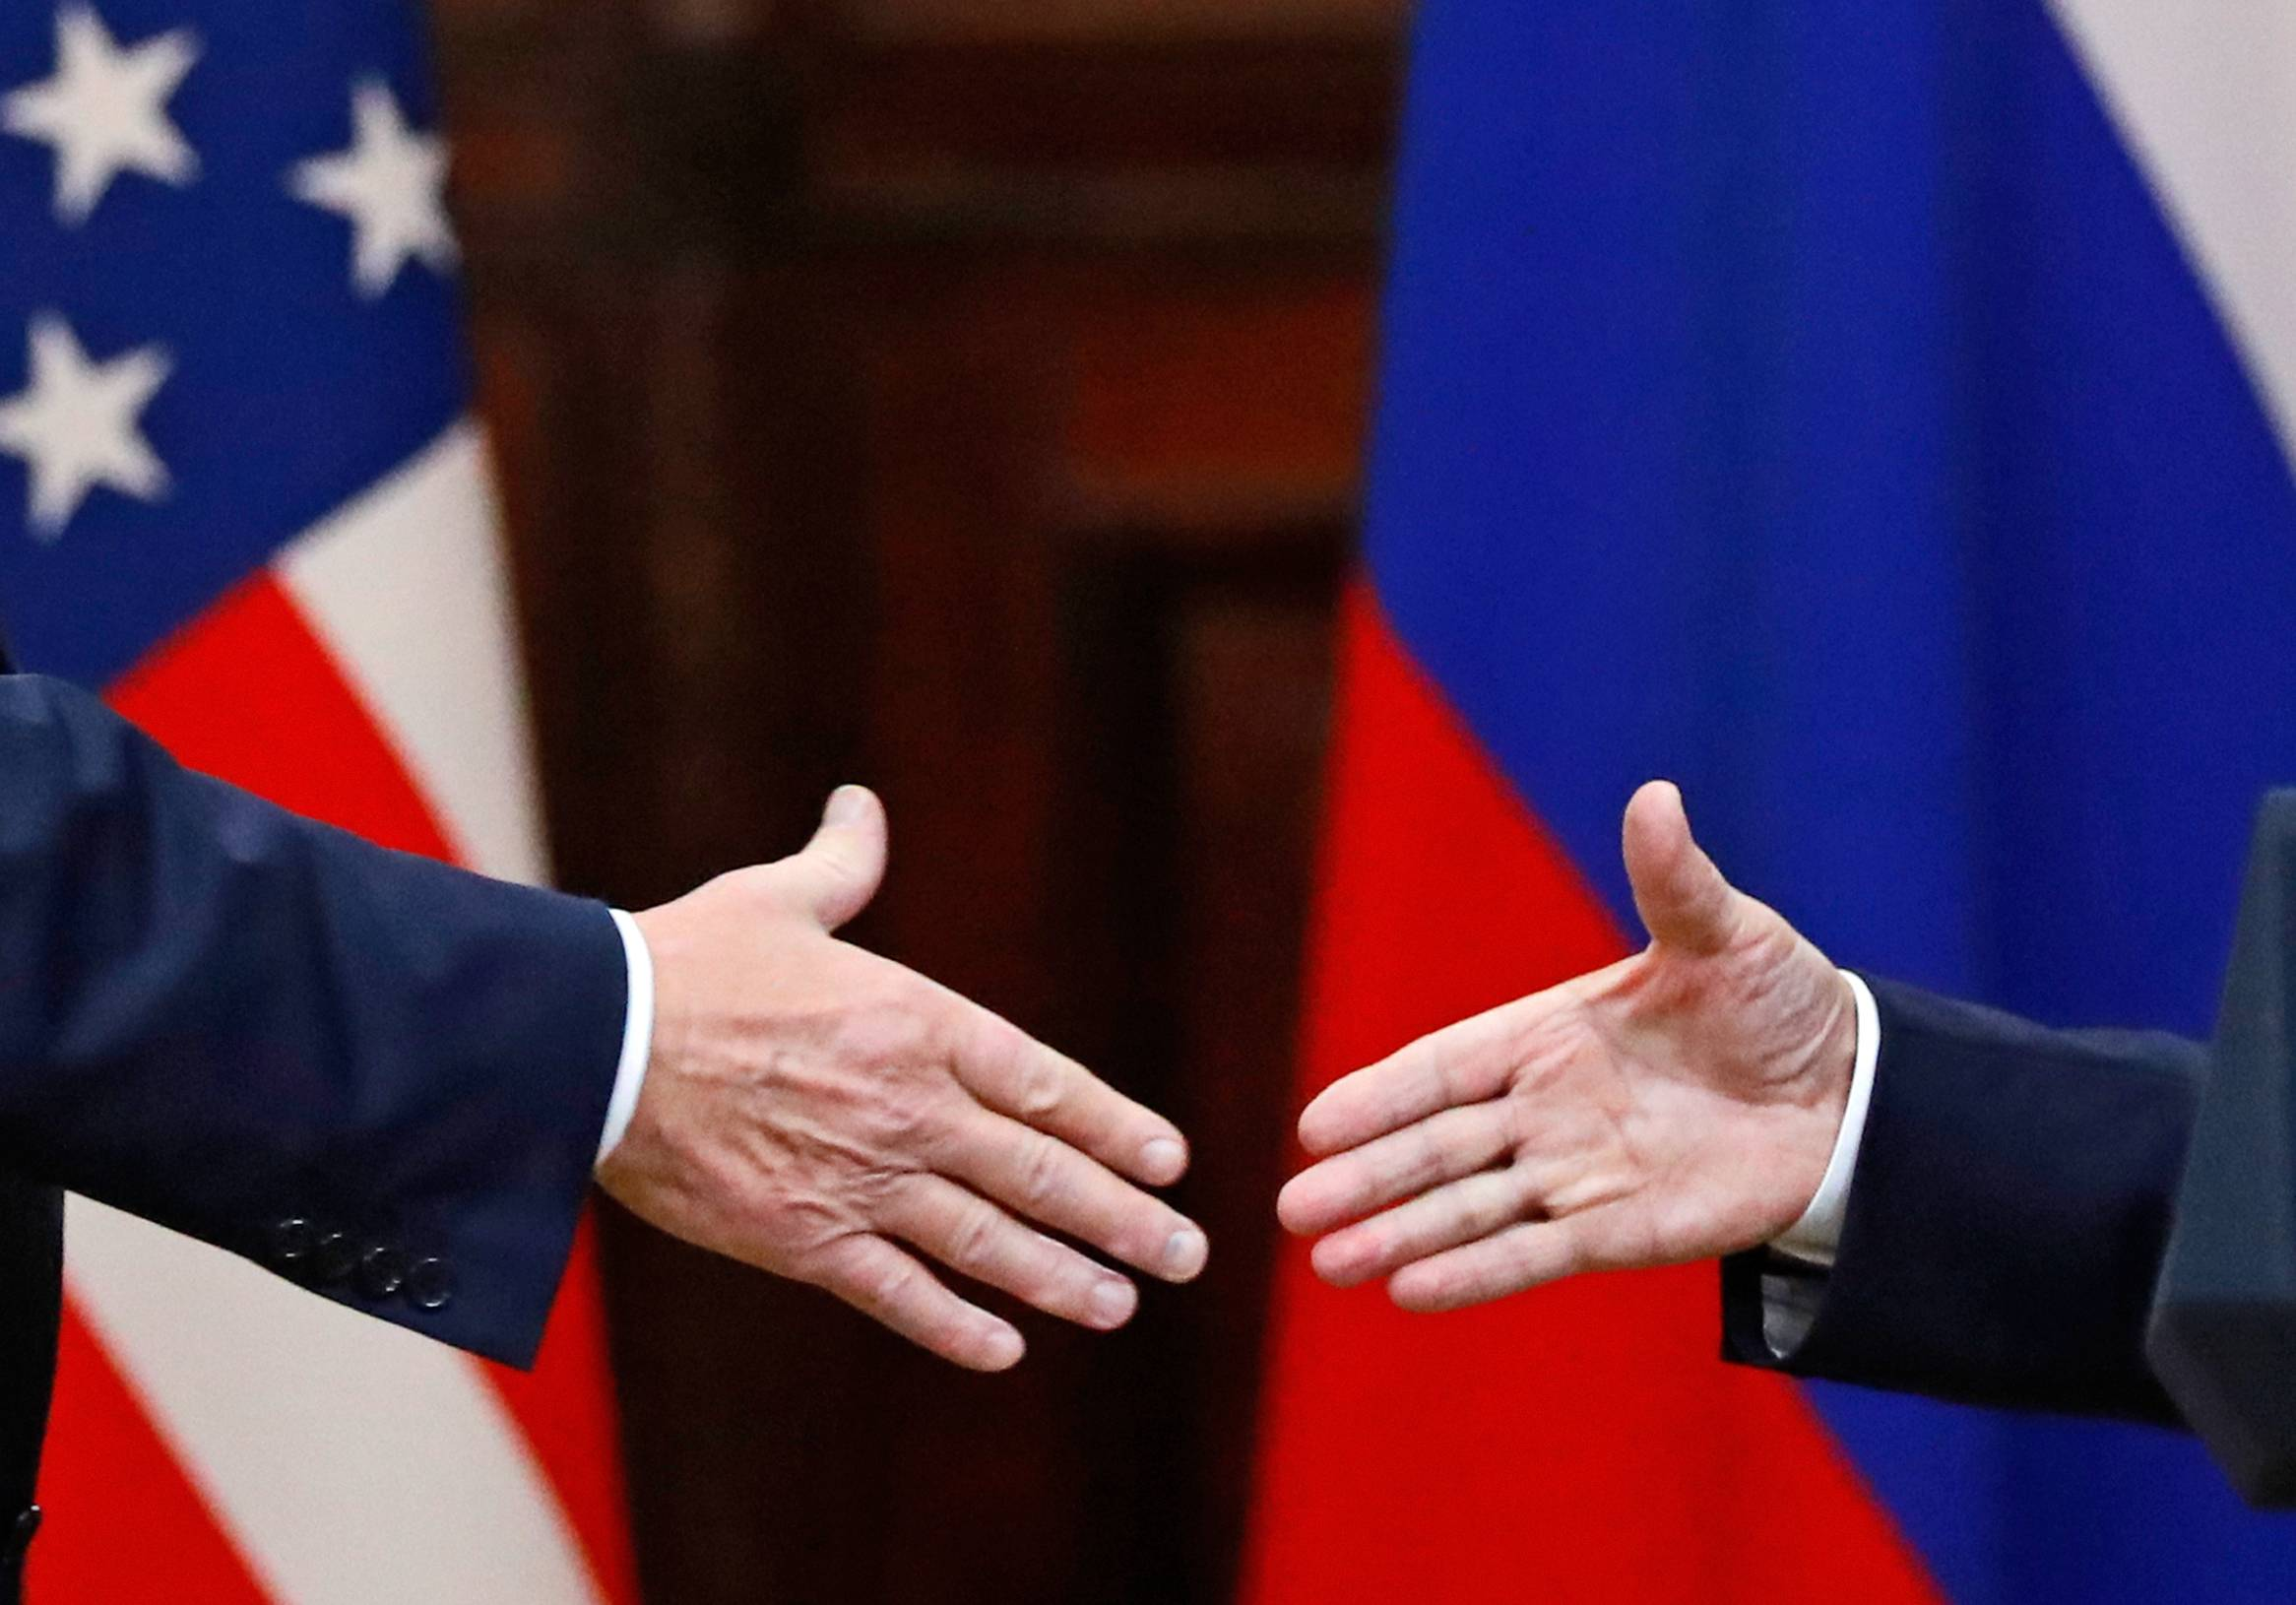 U.S. President Donald Trump shakes hands Monday with Russian President Vladimir Putin at the end of the news conference after their meeting at the Presidential Palace in Helsinki, Finland.